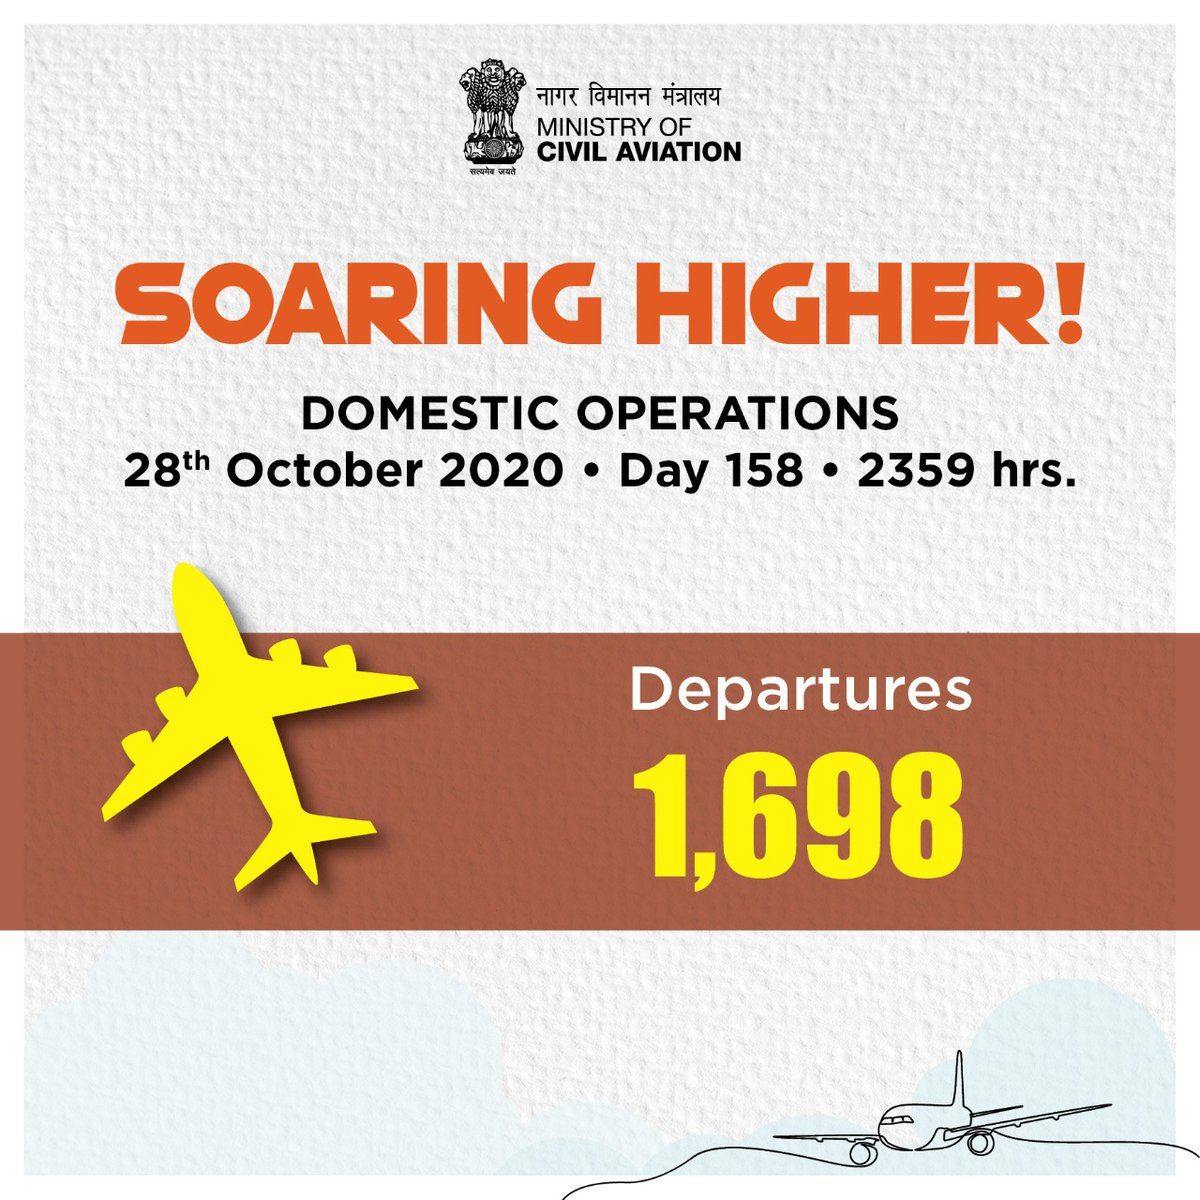 India soaring higher!  1698 flight departures took place across the country on 28th October. Aviation operations continue to soar! #SabUdenSabJuden #IndiaFliesHigh https://t.co/kJ8albn3HI